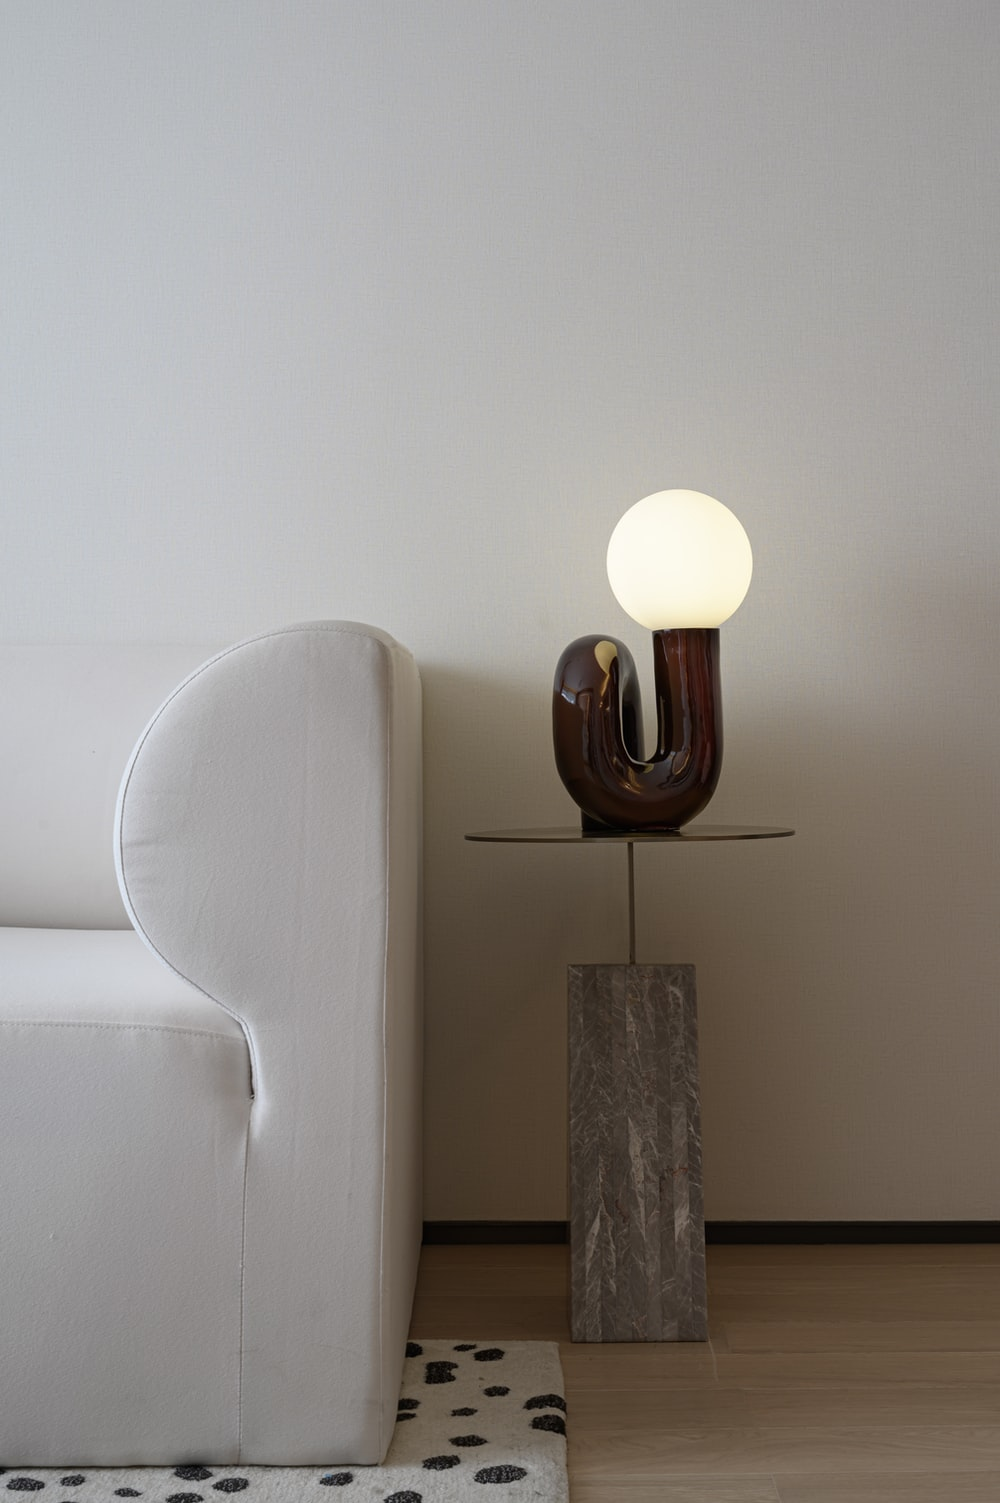 white and brown lamp on brown wooden table